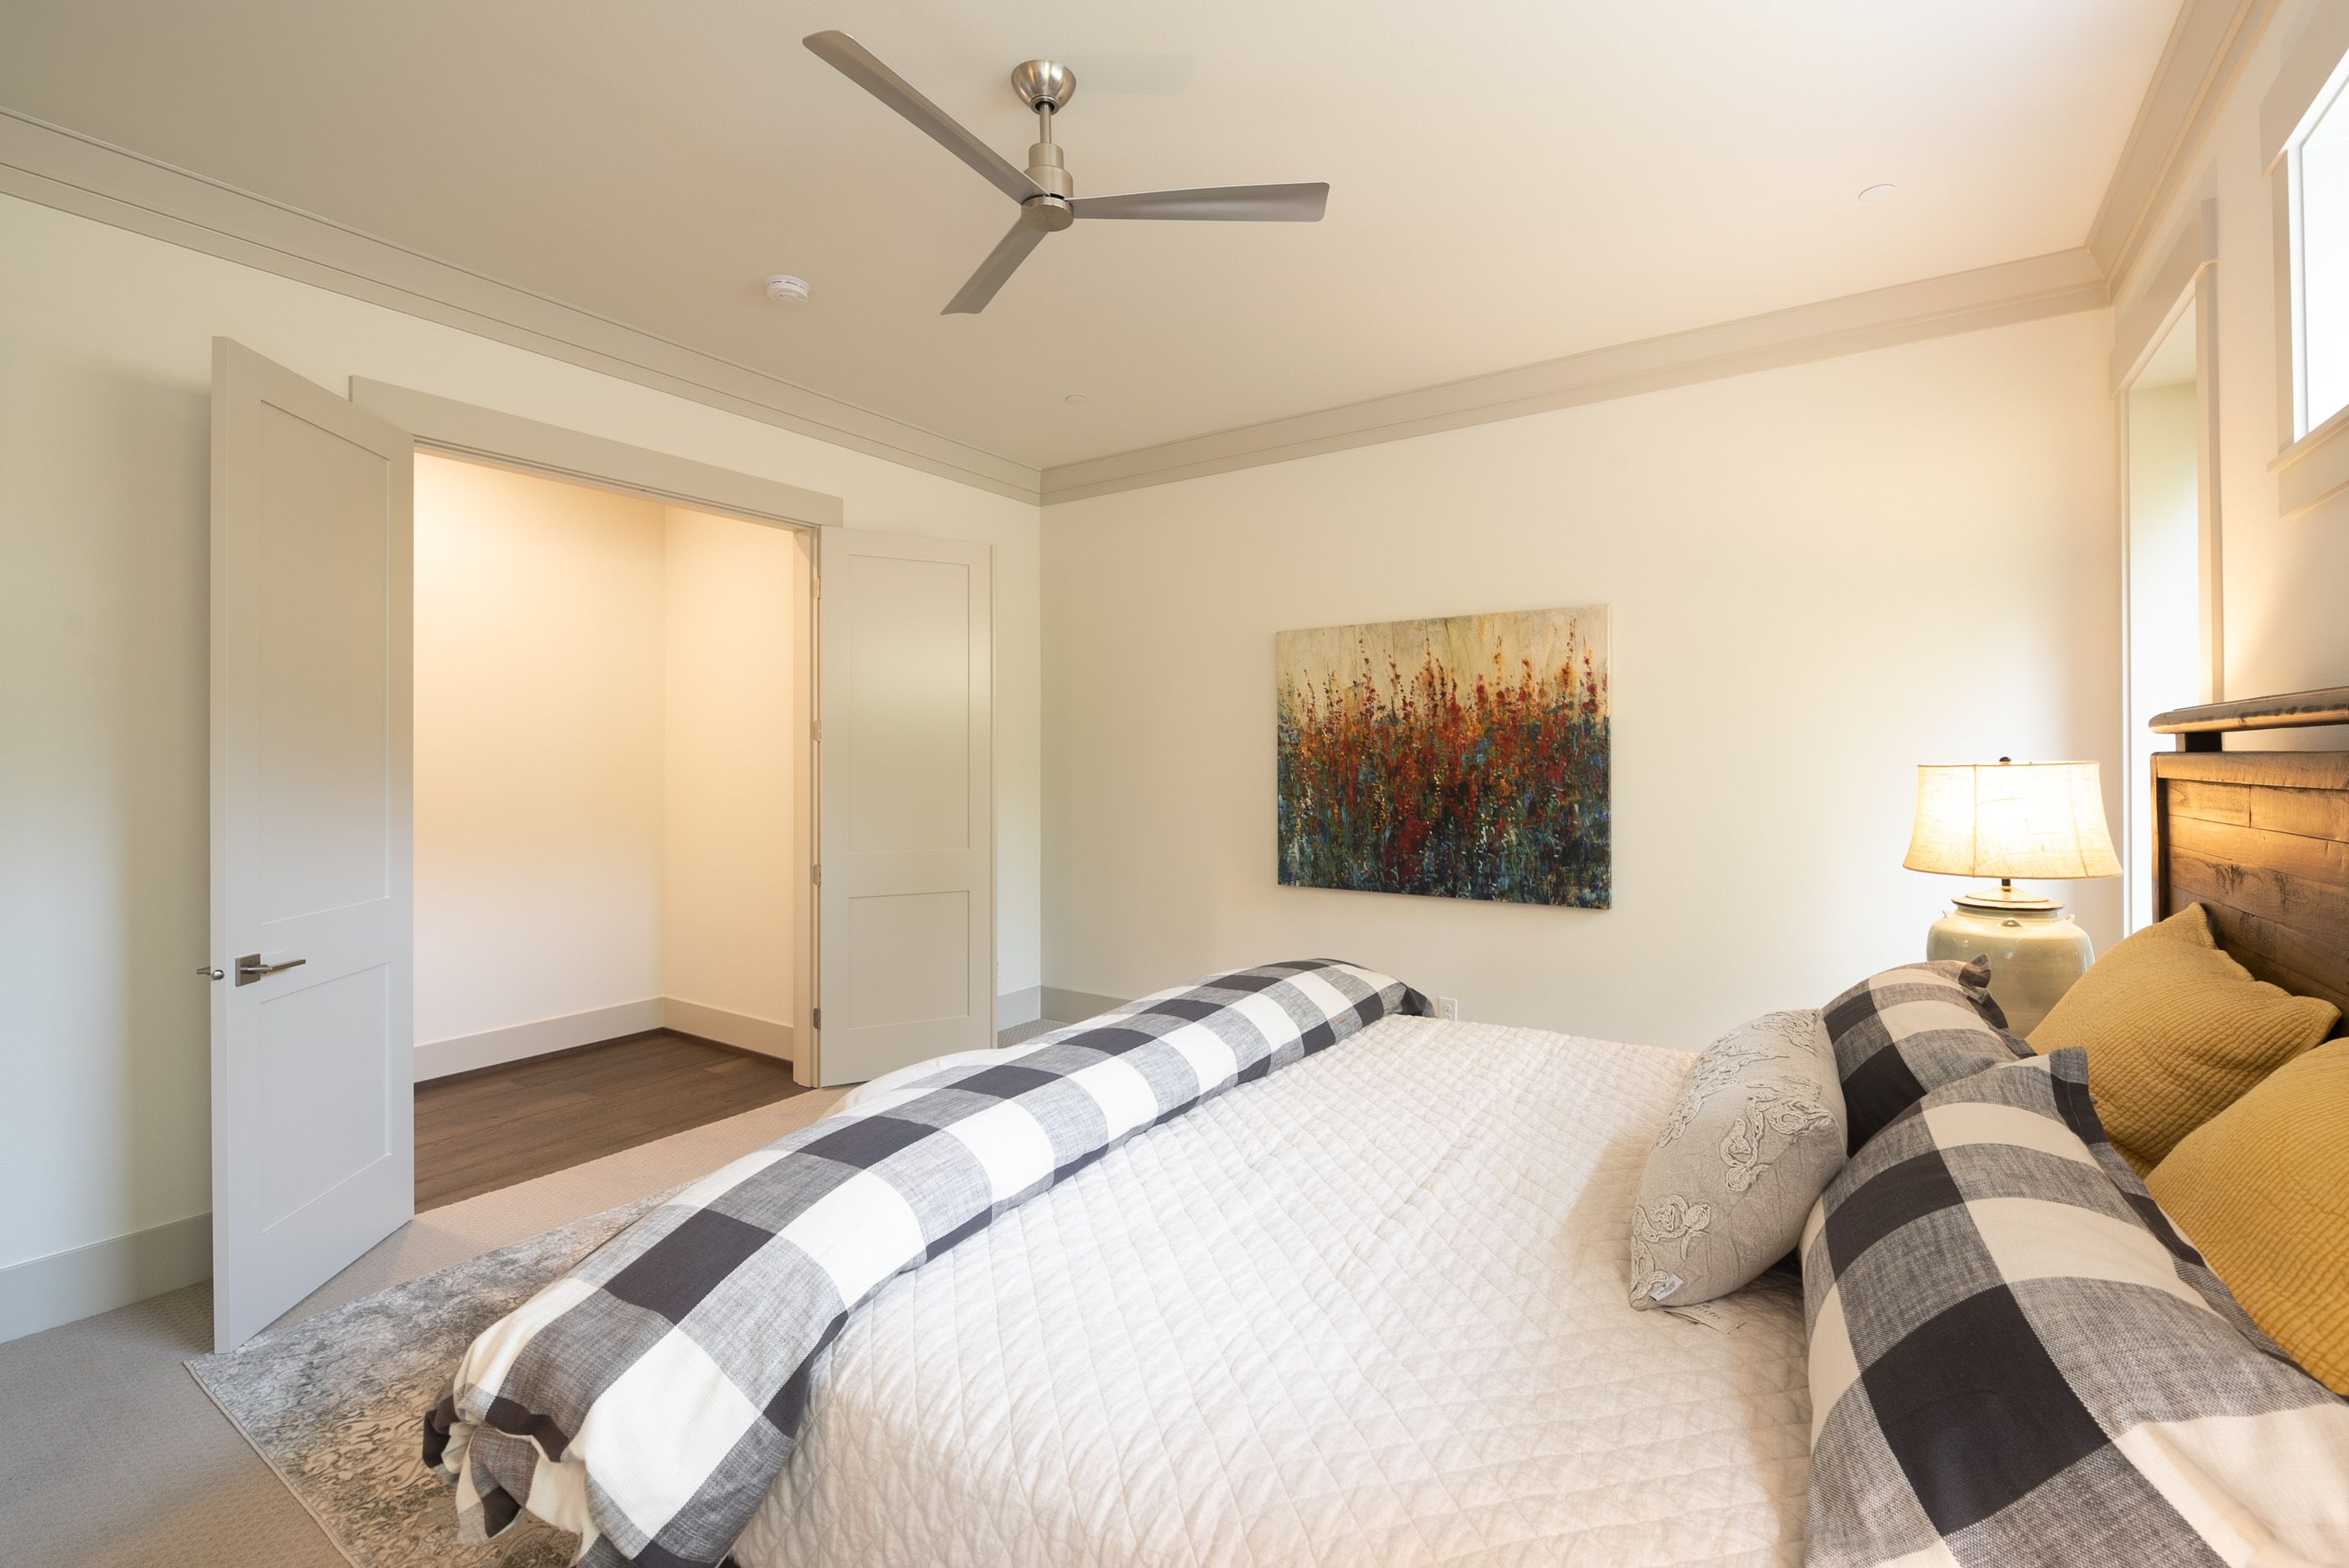 Bedroom featured in the Plan 164 By Schneider Family Homes in Seattle-Bellevue, WA